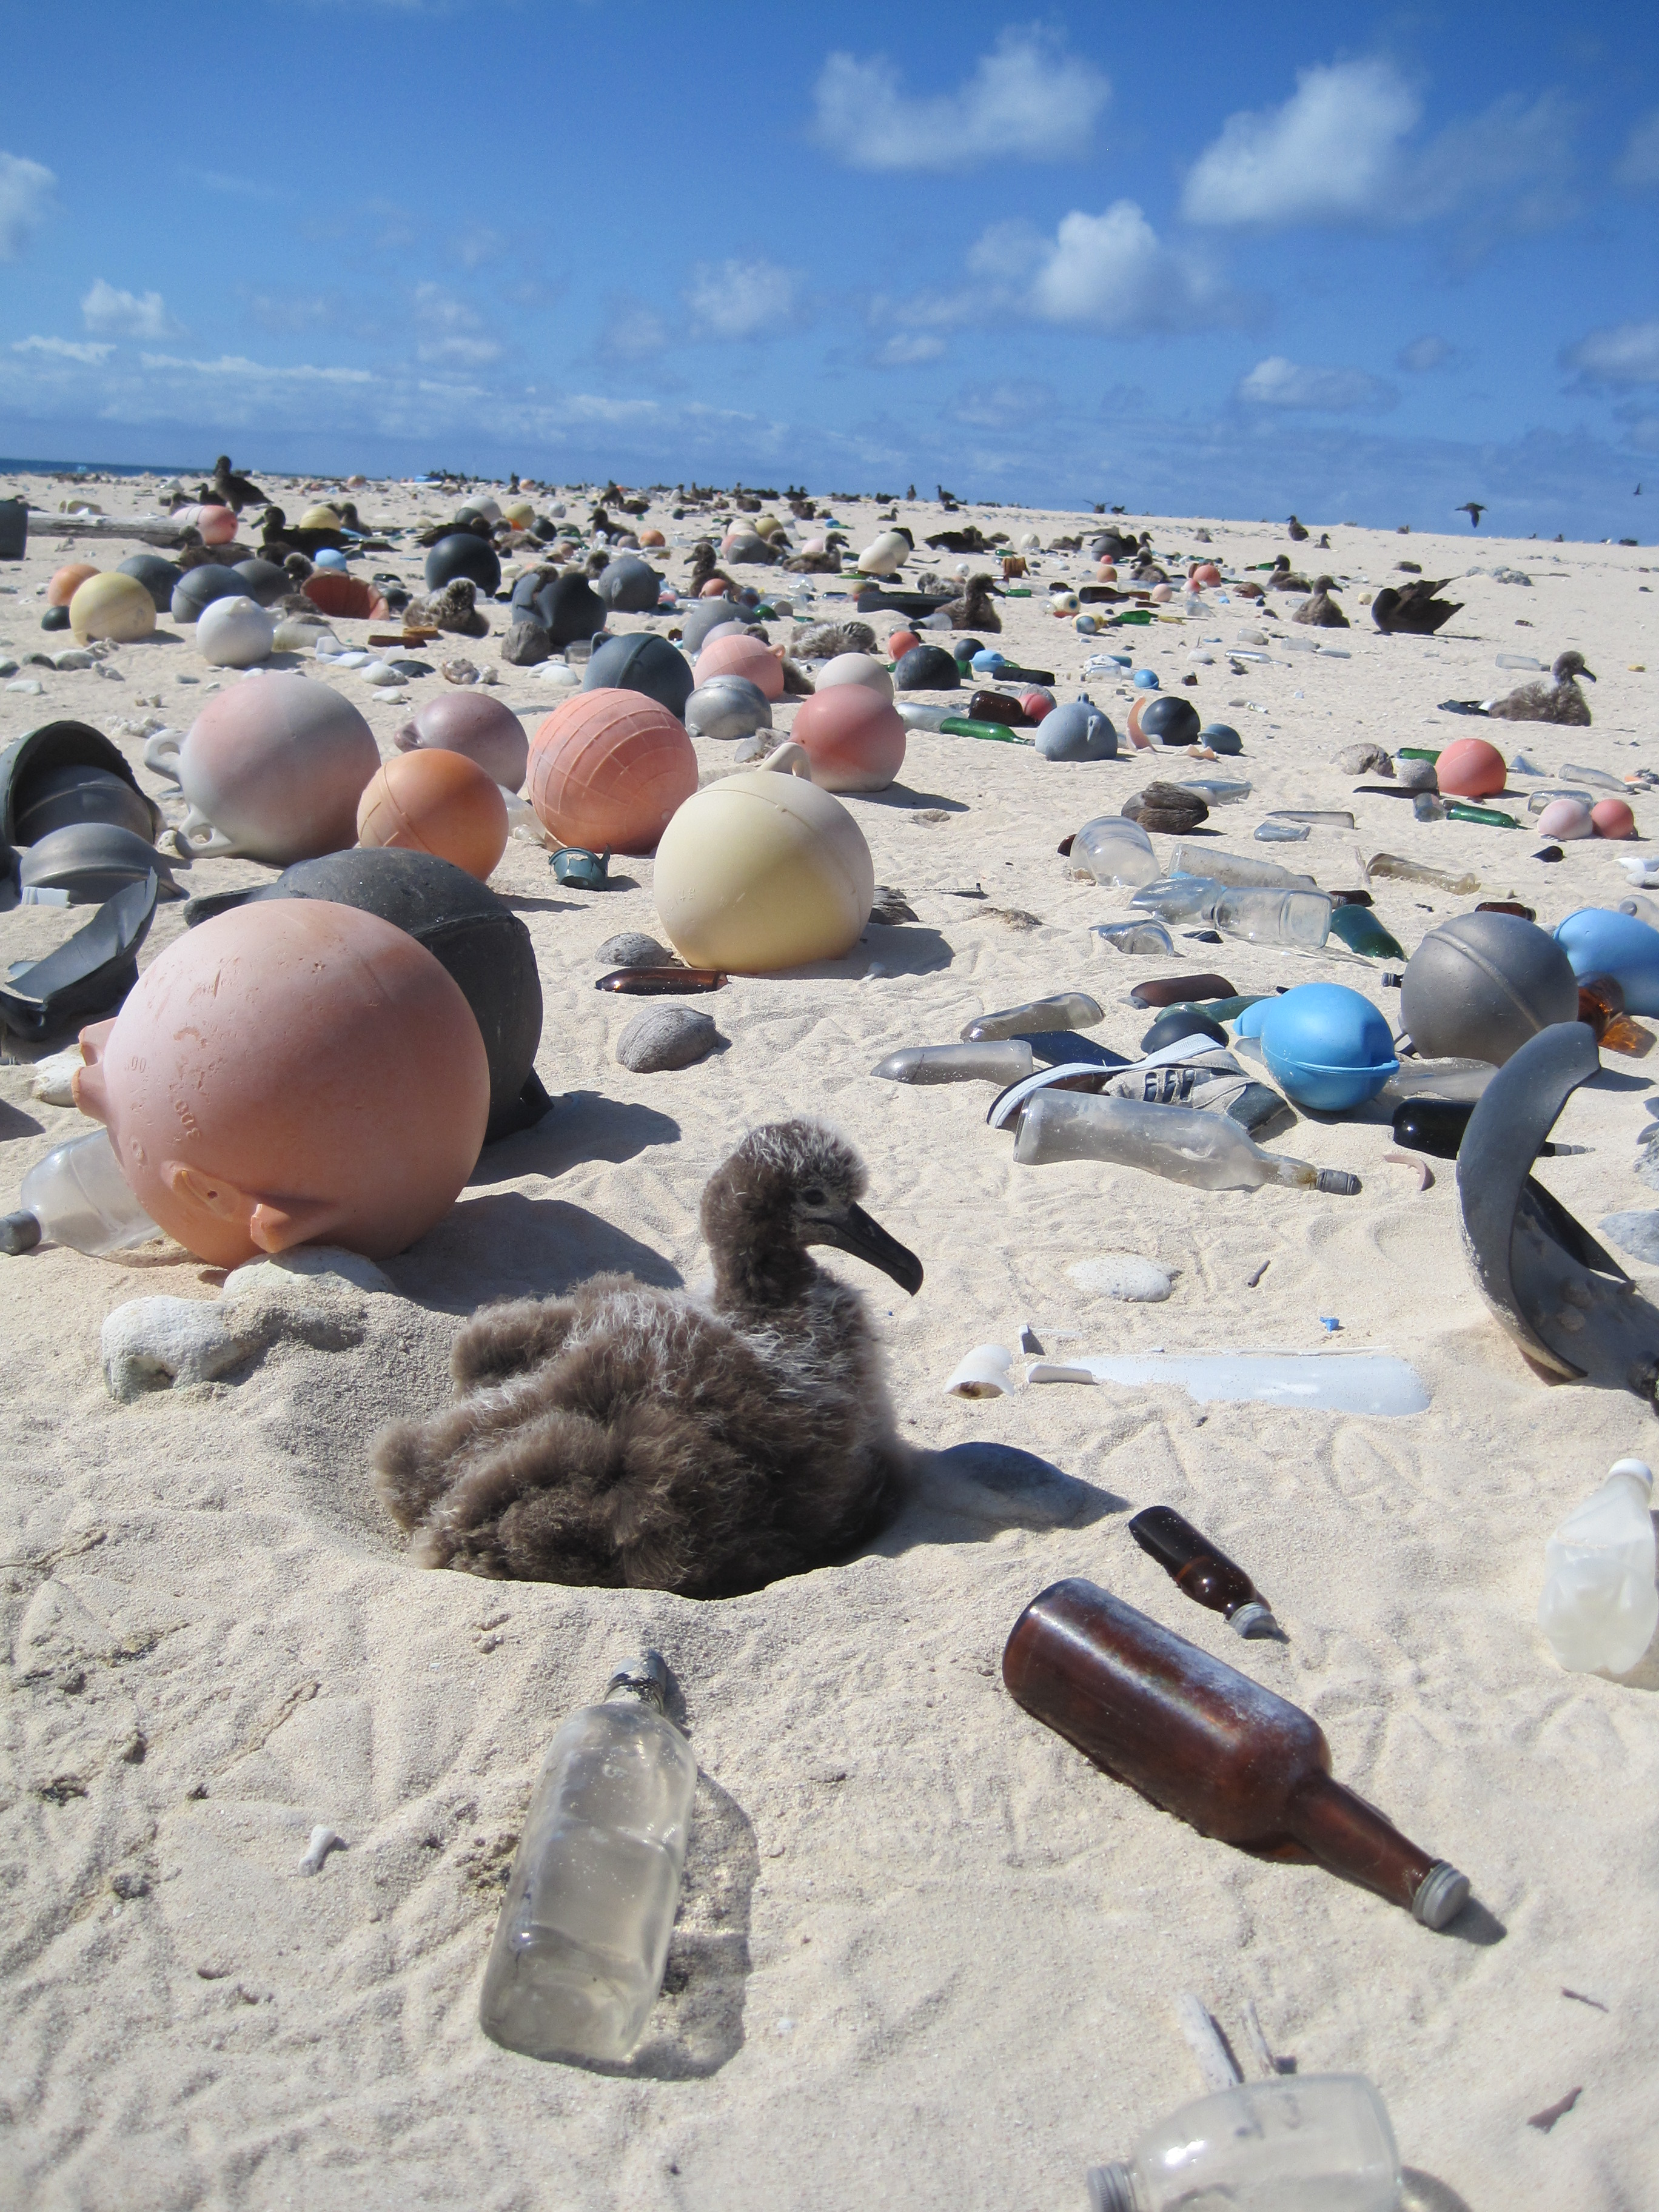 Albatross chick surrounded by trash Papahanaumokuakea